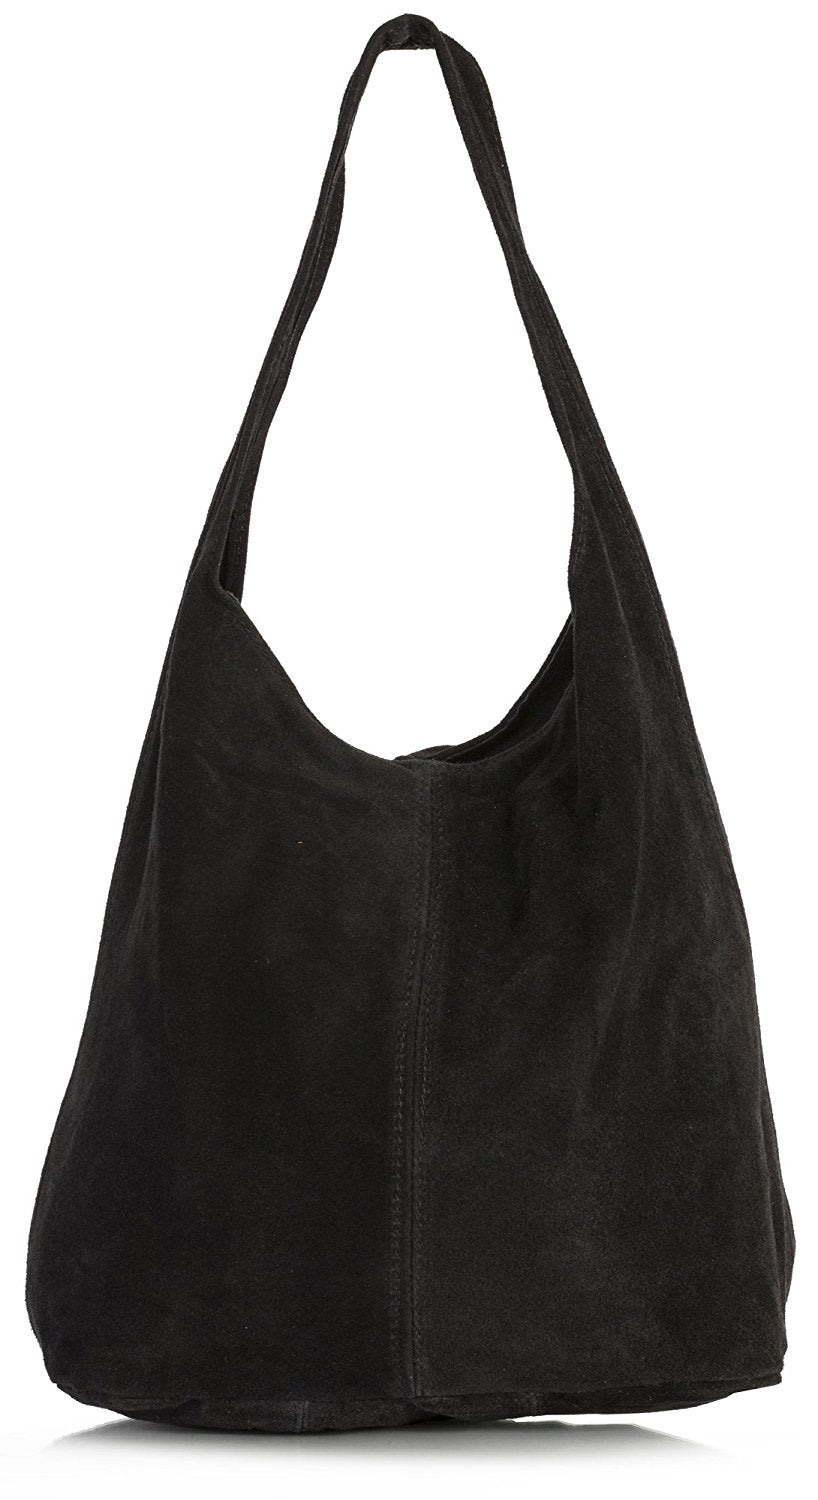 LiaTalia Large Real Italian Suede Leather Single Shoulder Strap Hobo Slouch  Bag - Shay fb61677b5fd6c